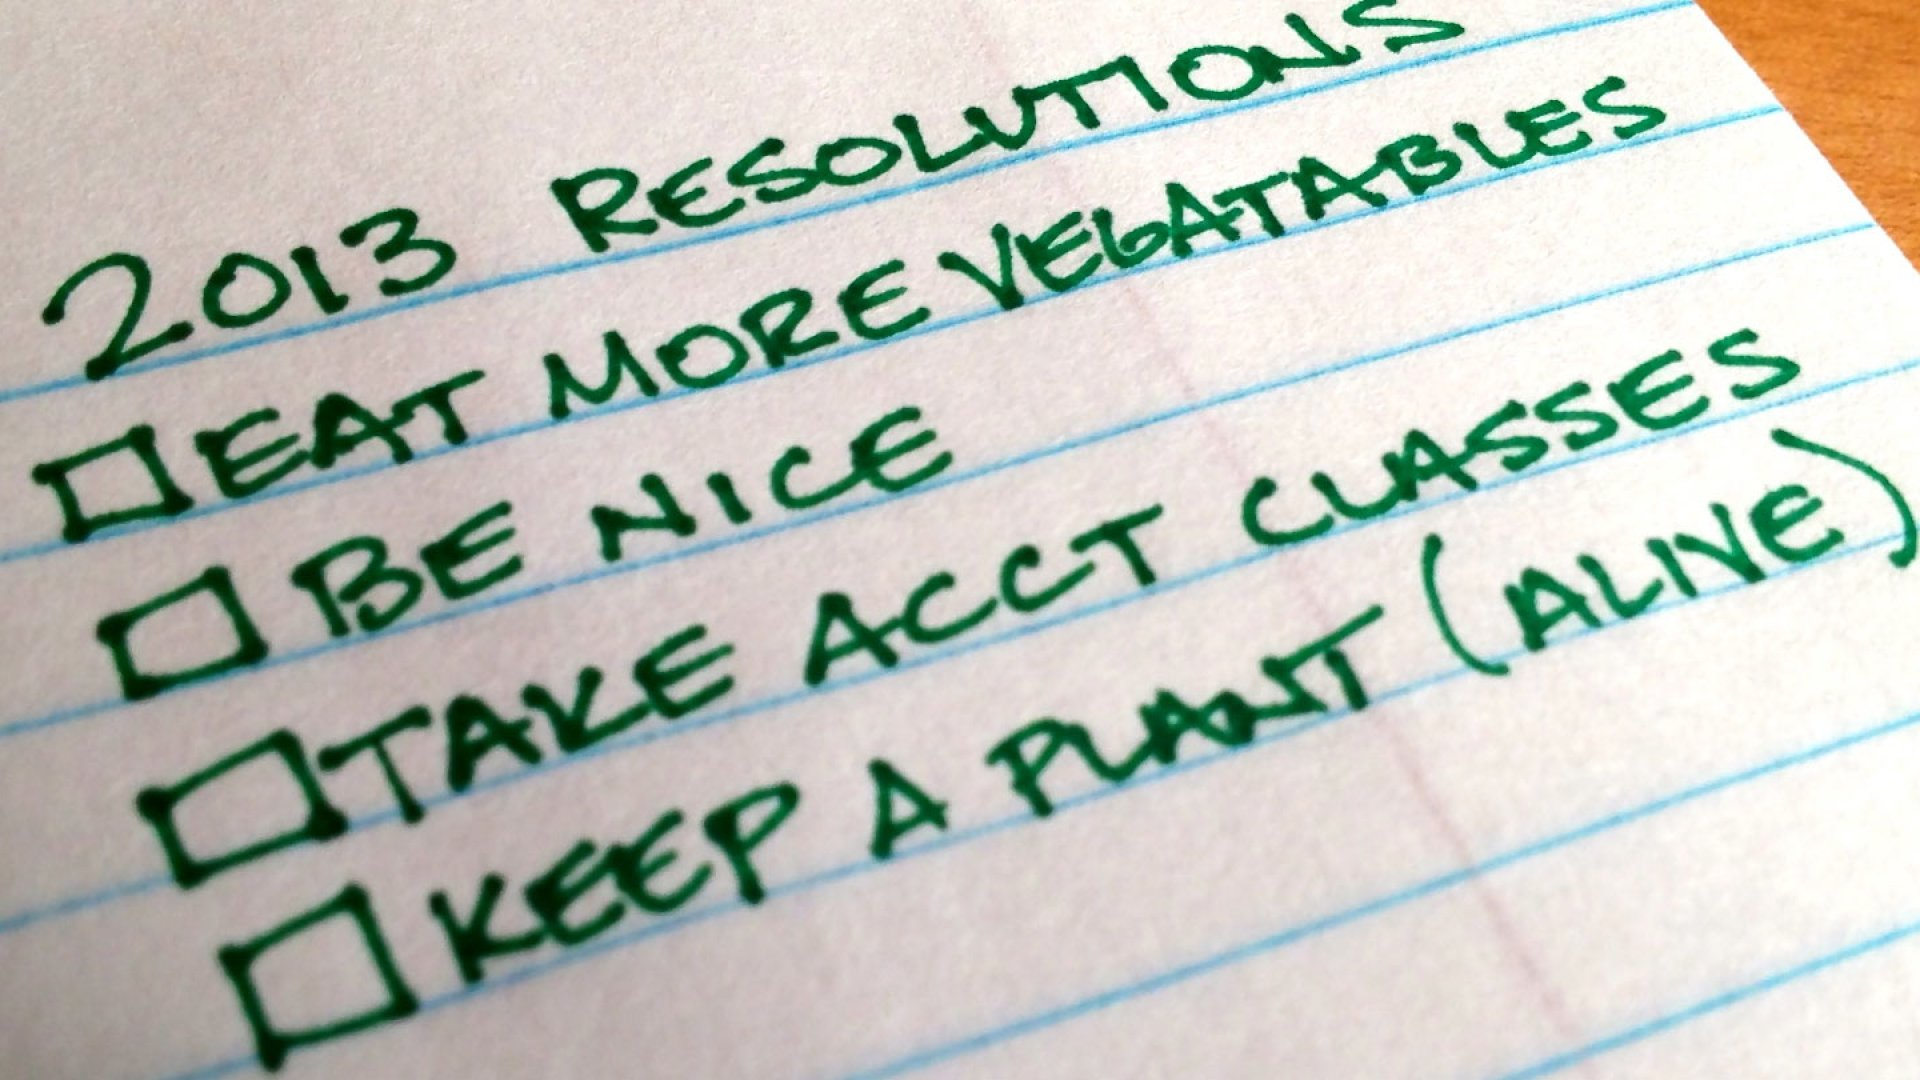 5 Anti-Resolutions for 2013